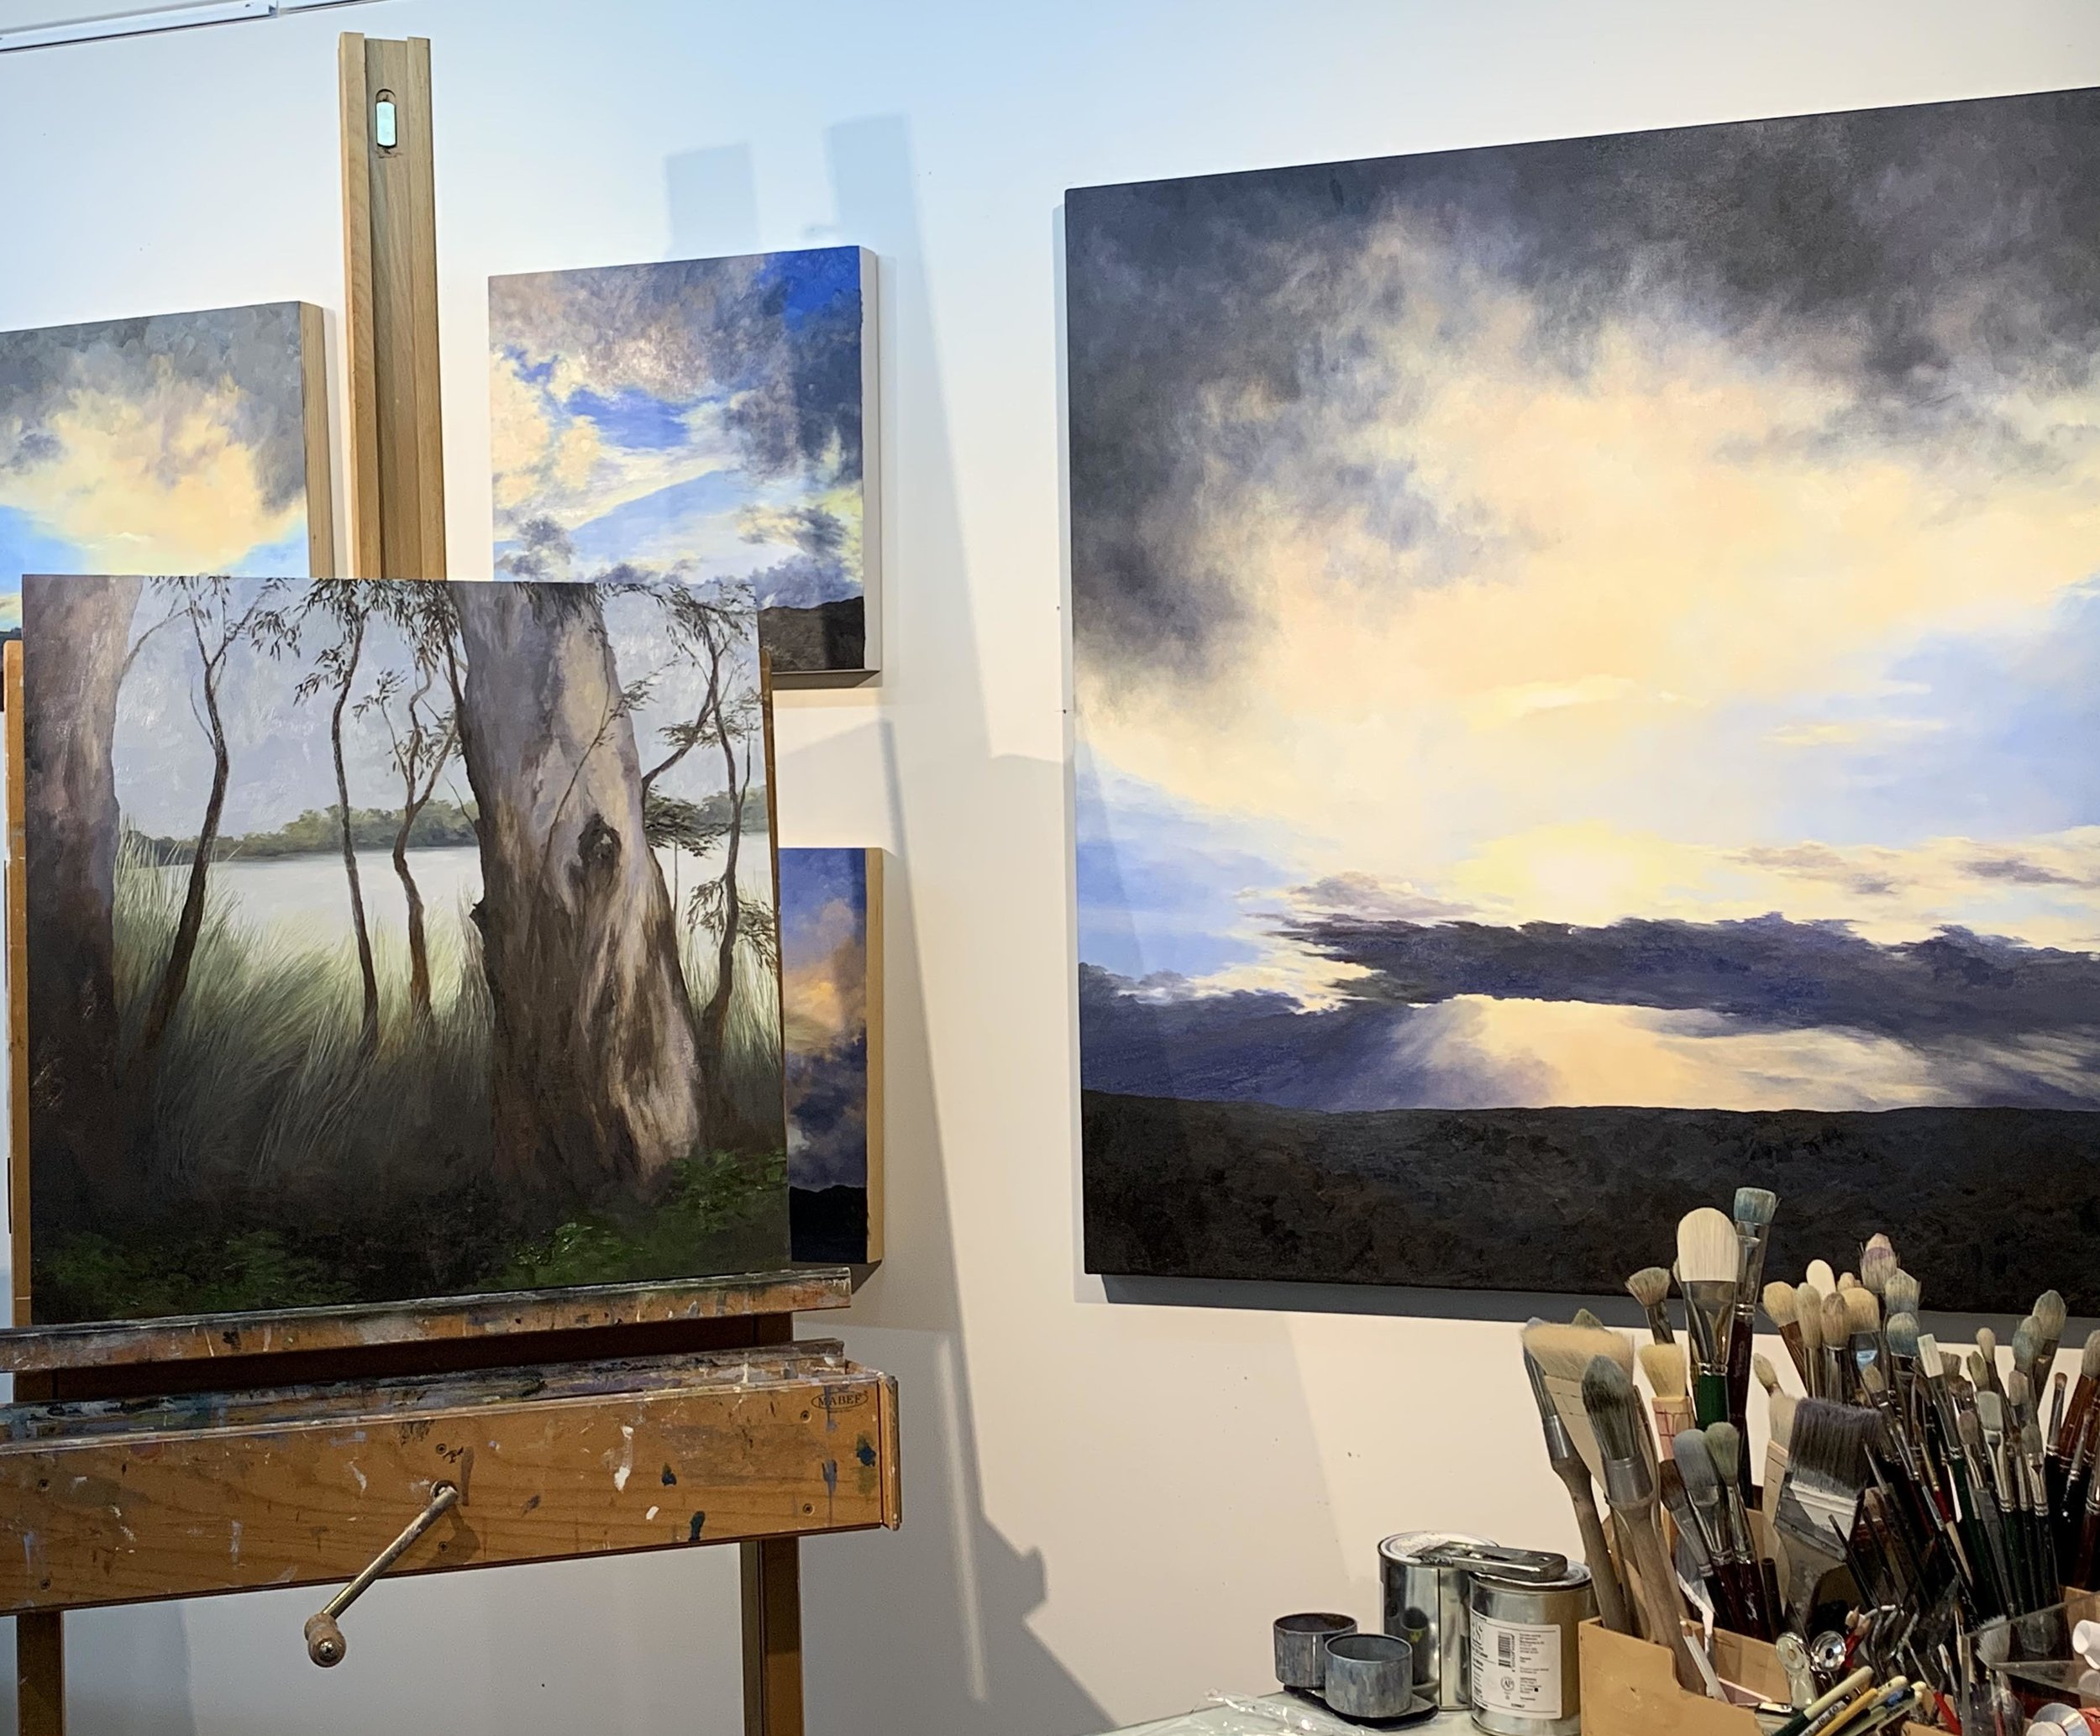 Recent work in the studio, including a commissioned painting on the easel.